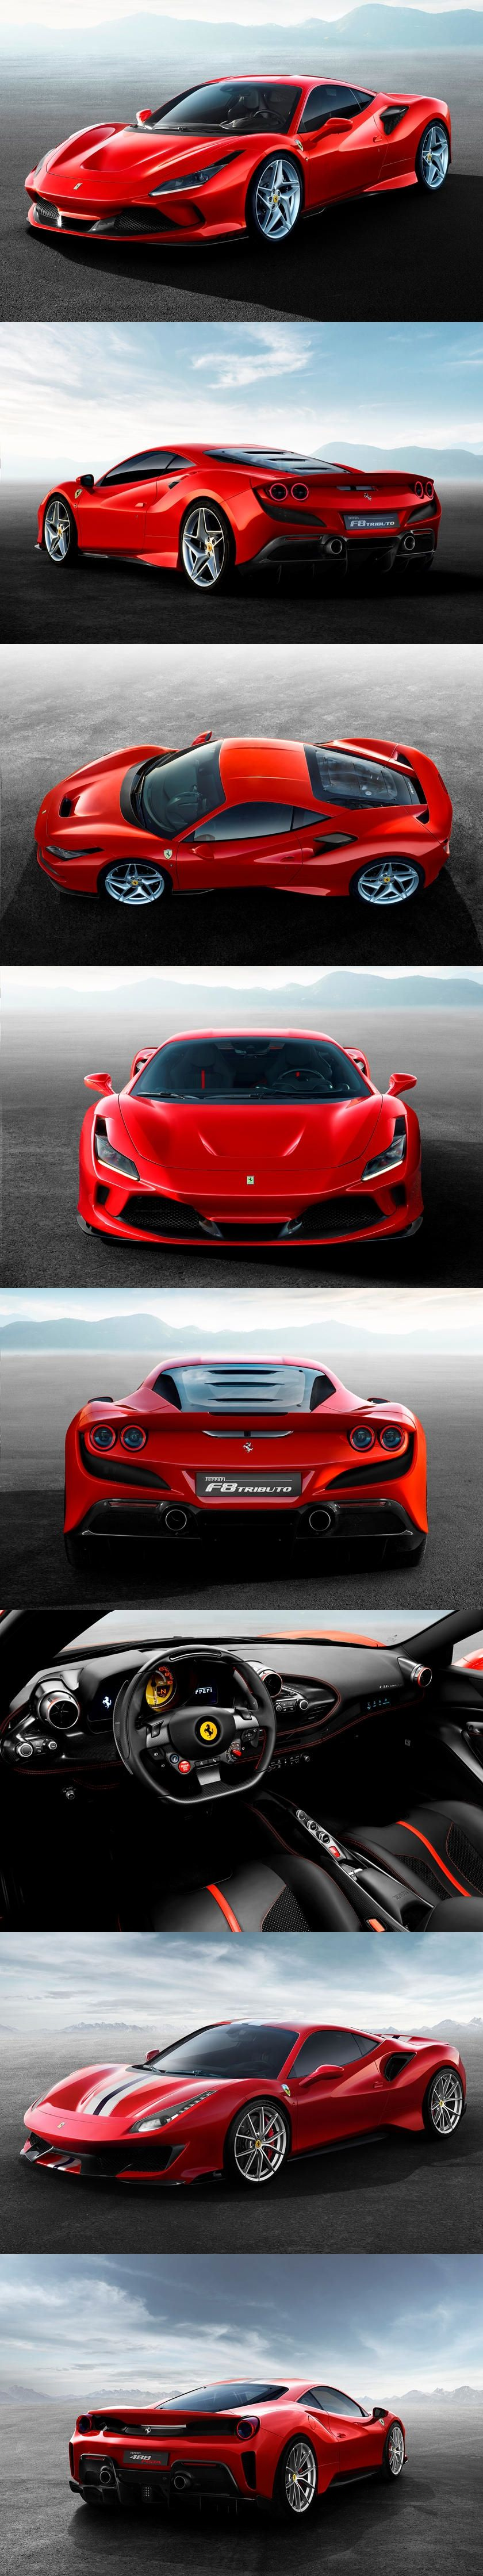 5 New Ferraris Are Coming This Year Turns Out The F8 Tributo Is The First Of Five New Ferrari Models Planned For 2019 Ferrari New Ferrari Super Cars